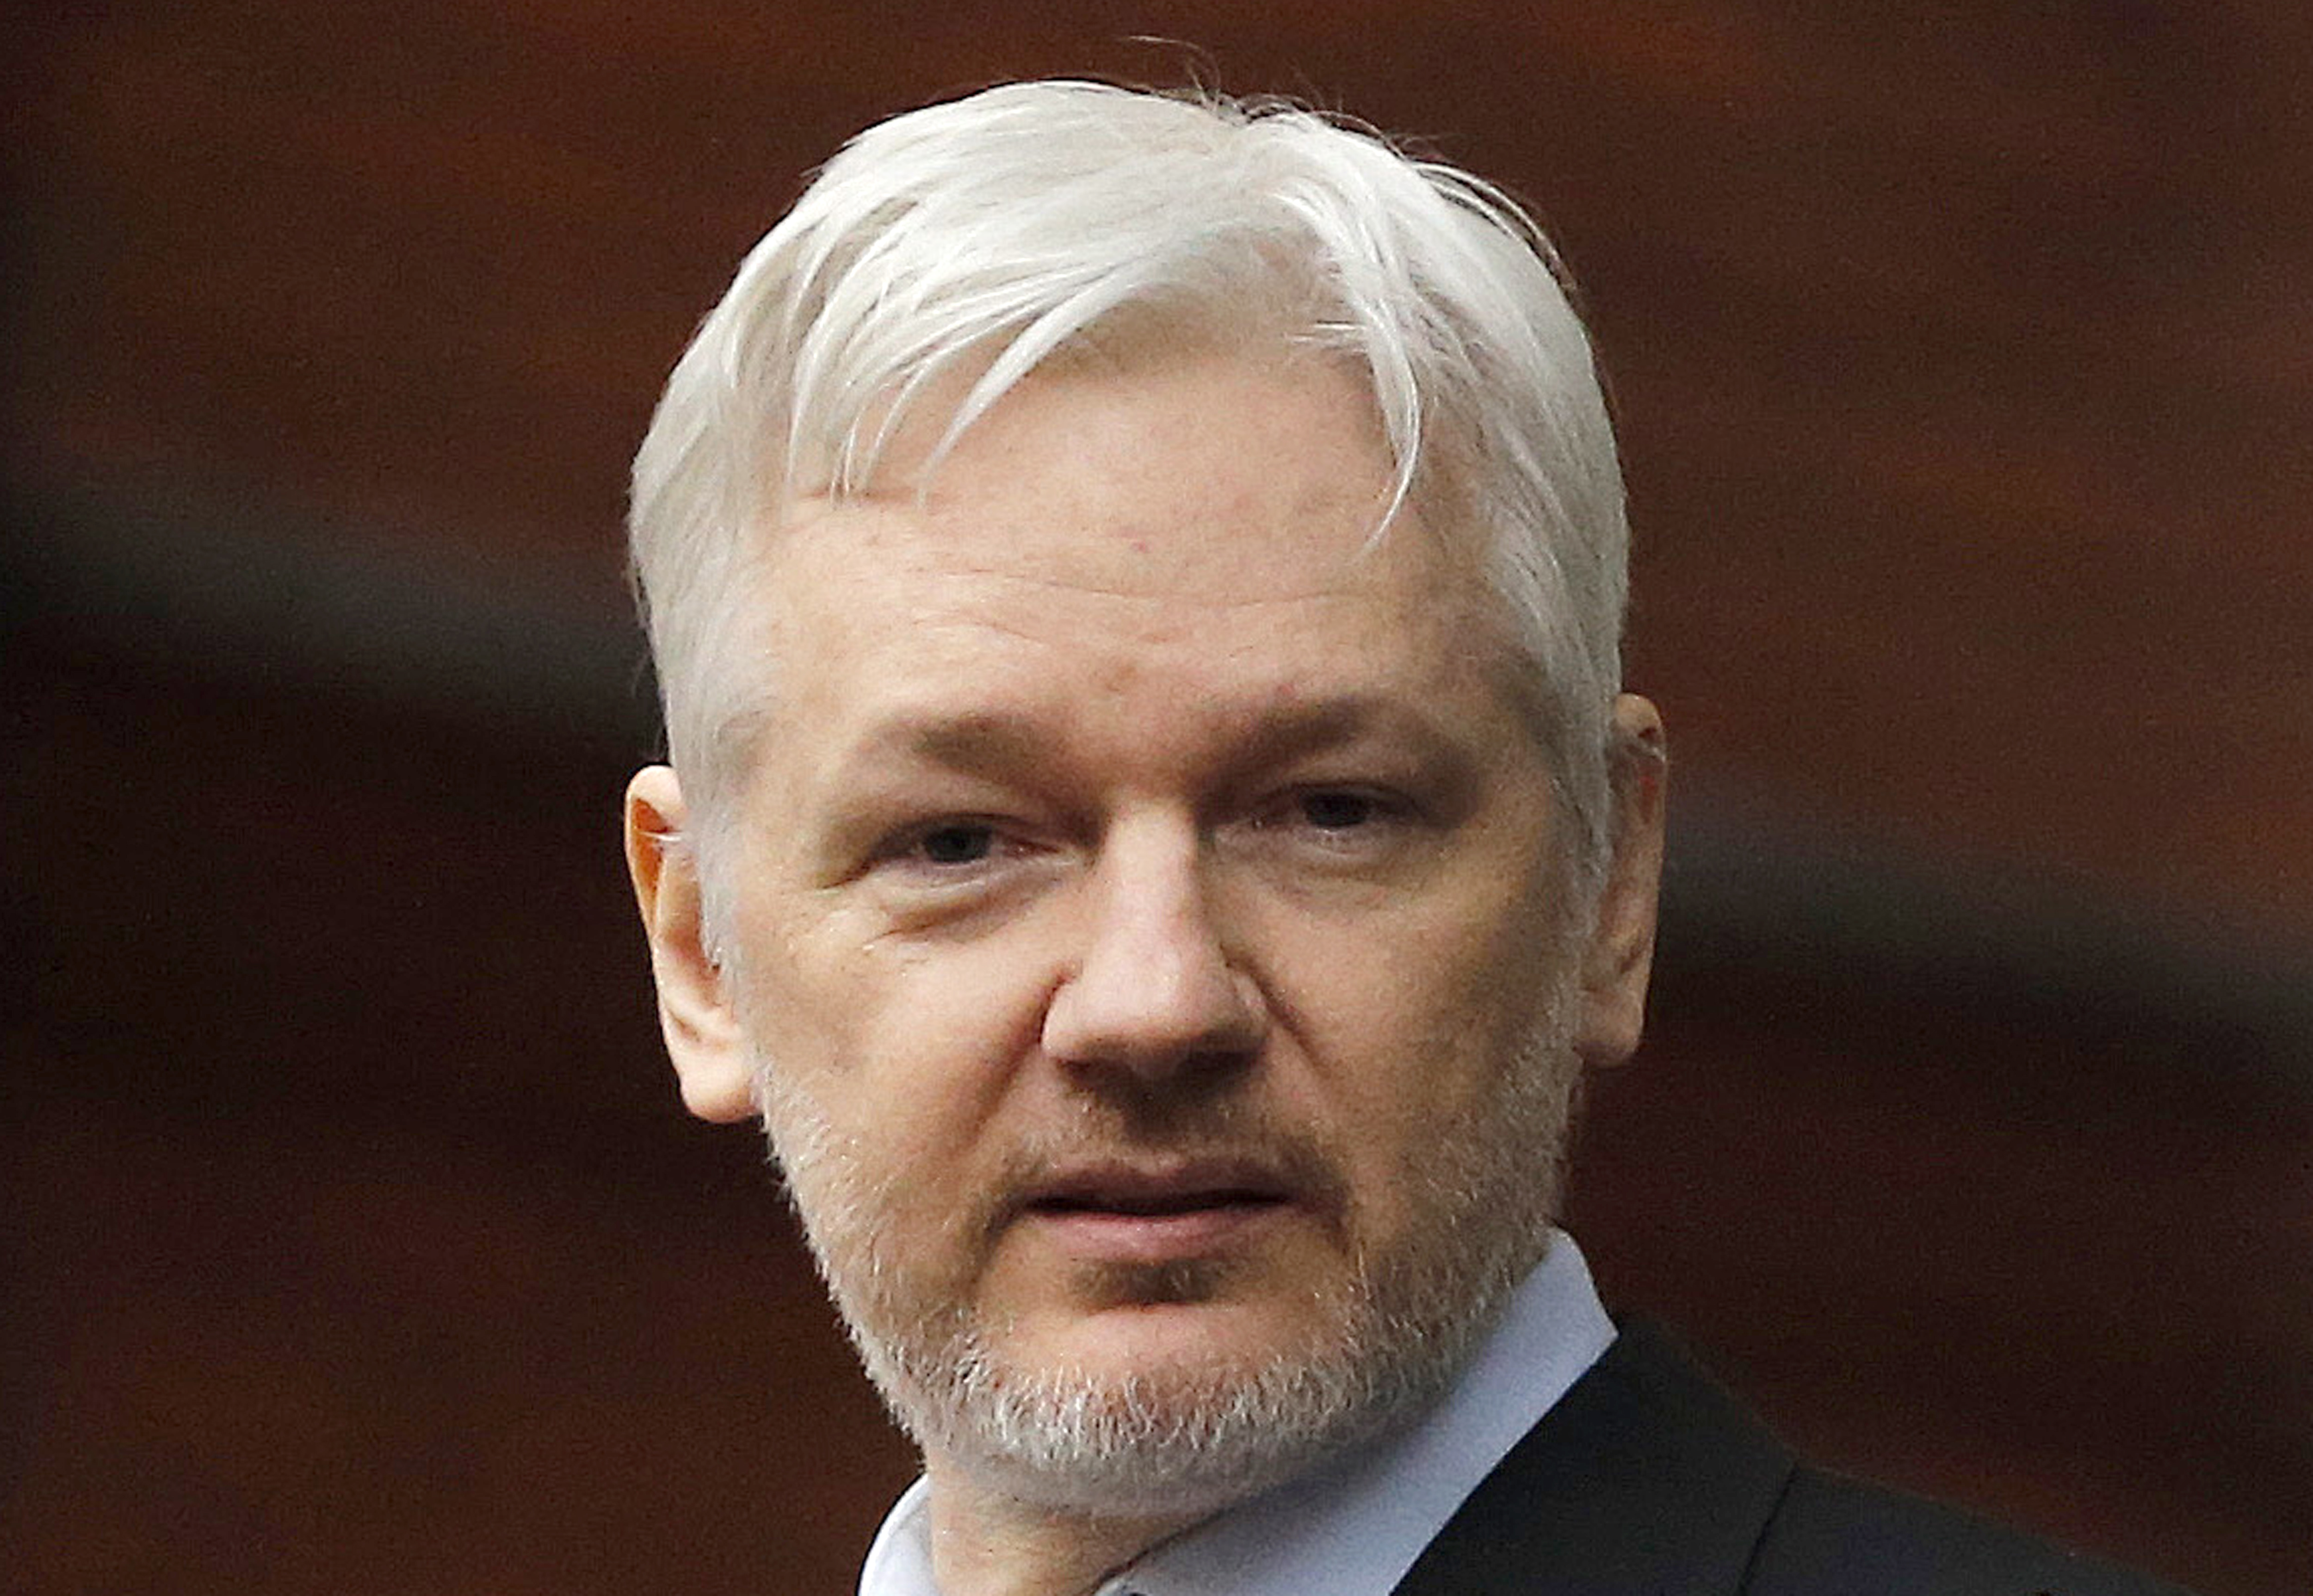 In this Feb. 5, 2016, file photo, Julian Assange stands on the balcony of the Ecuadorean Embassy in London.